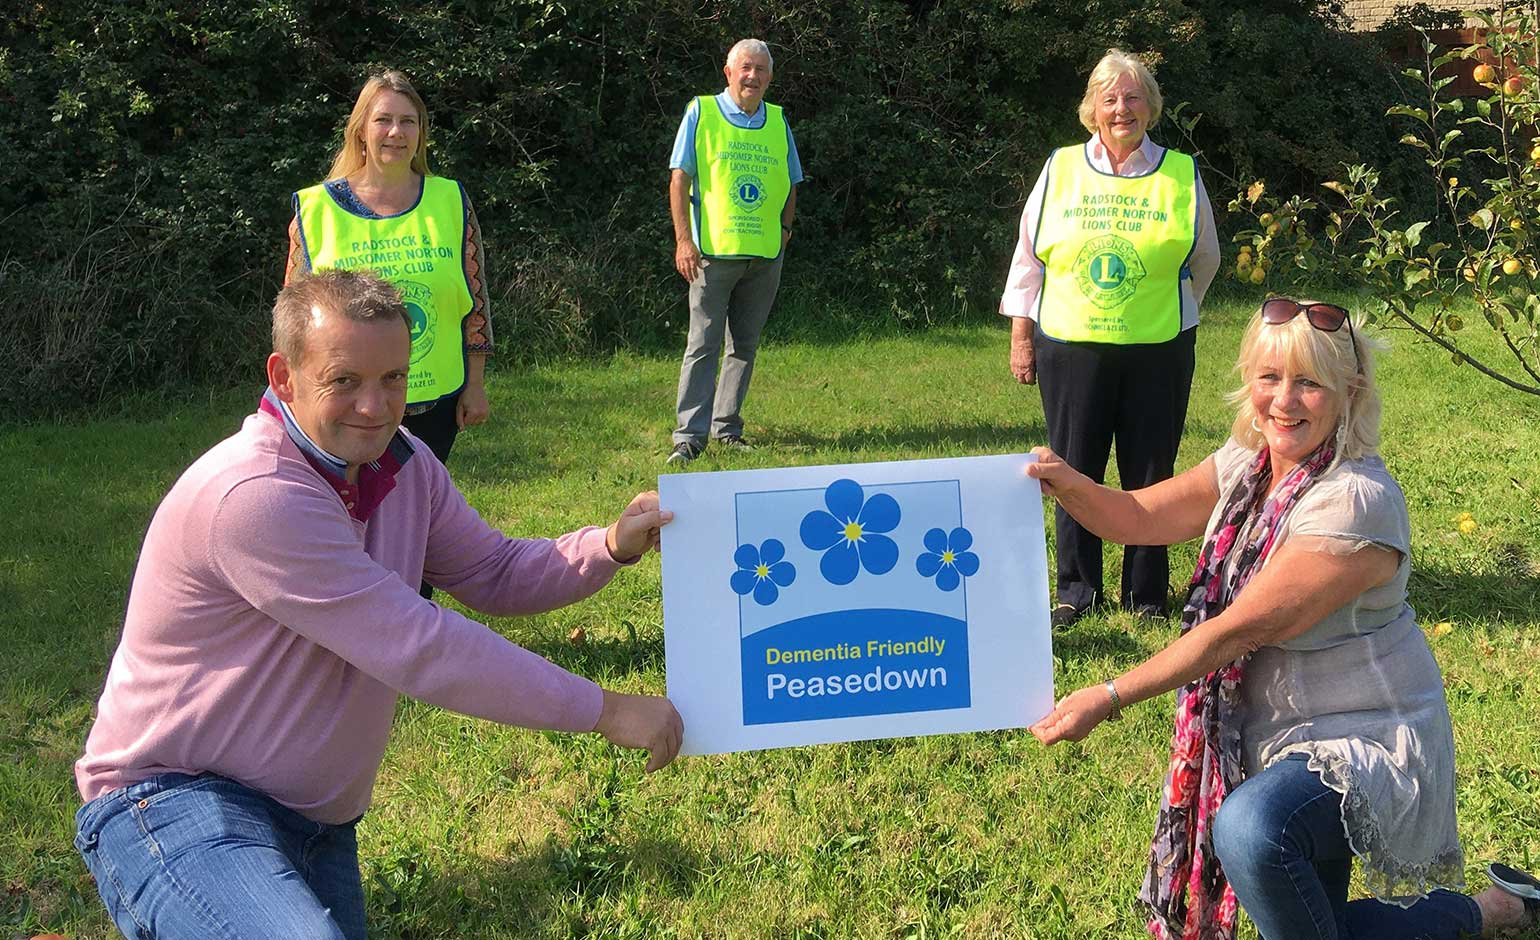 Peasedown residents being invited to join upcoming dementia workshops